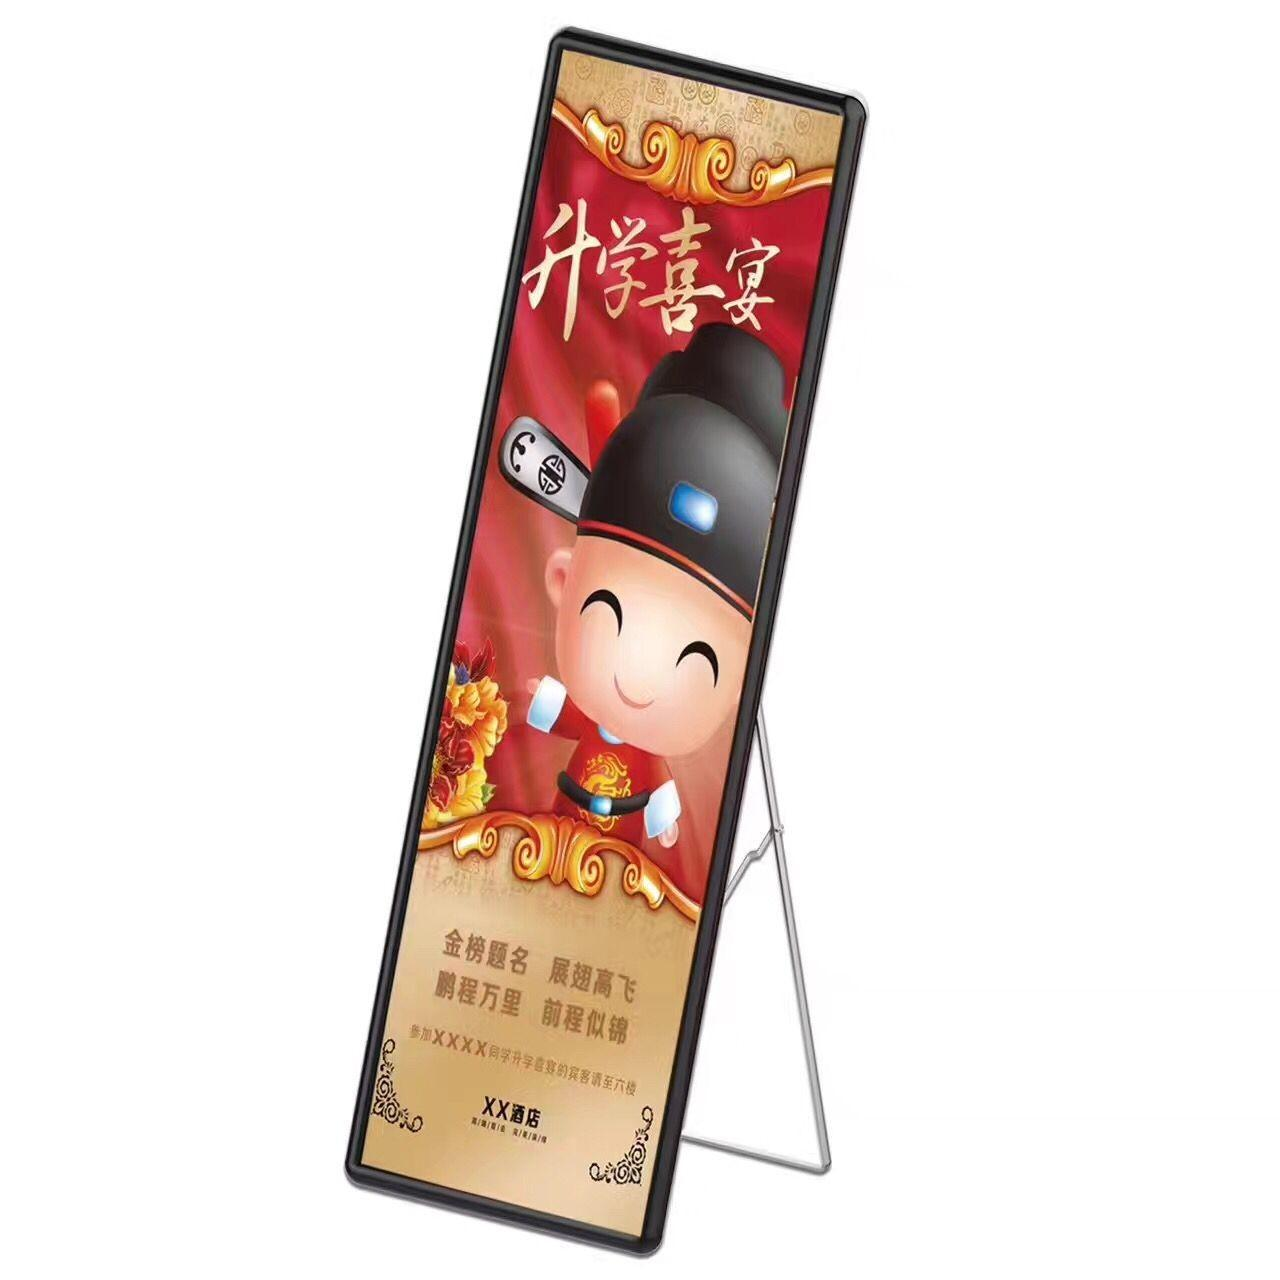 Cheap High quality indoor P1 P2 P3 P4 P5 P6 poster led display for shopmall advertising wholesale